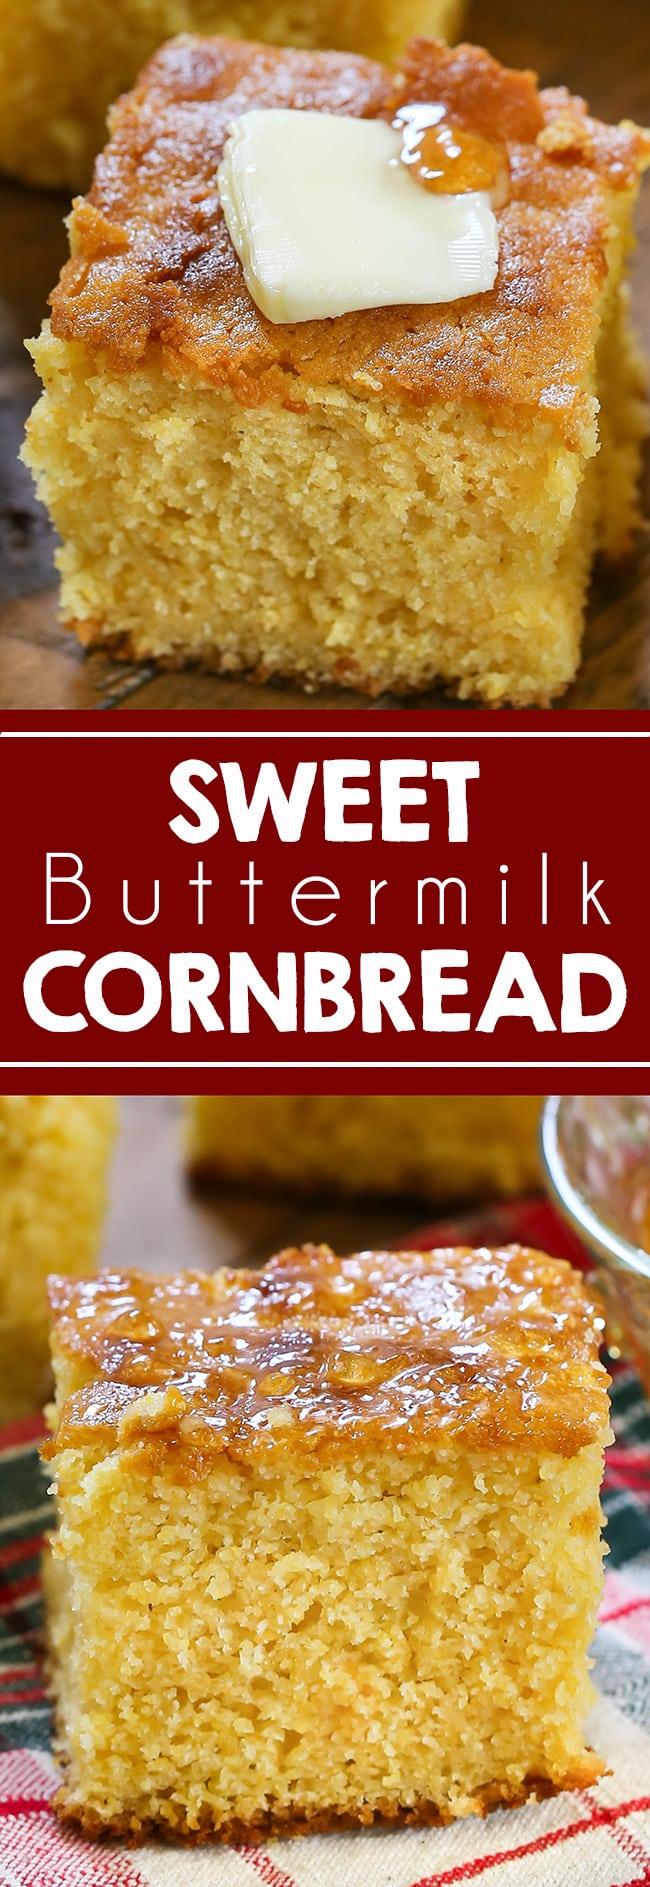 This Sweet Buttermilk Cornbread is truly a southern staple that is great all winter and fall long! Serve for the holidays or with any winter dish.